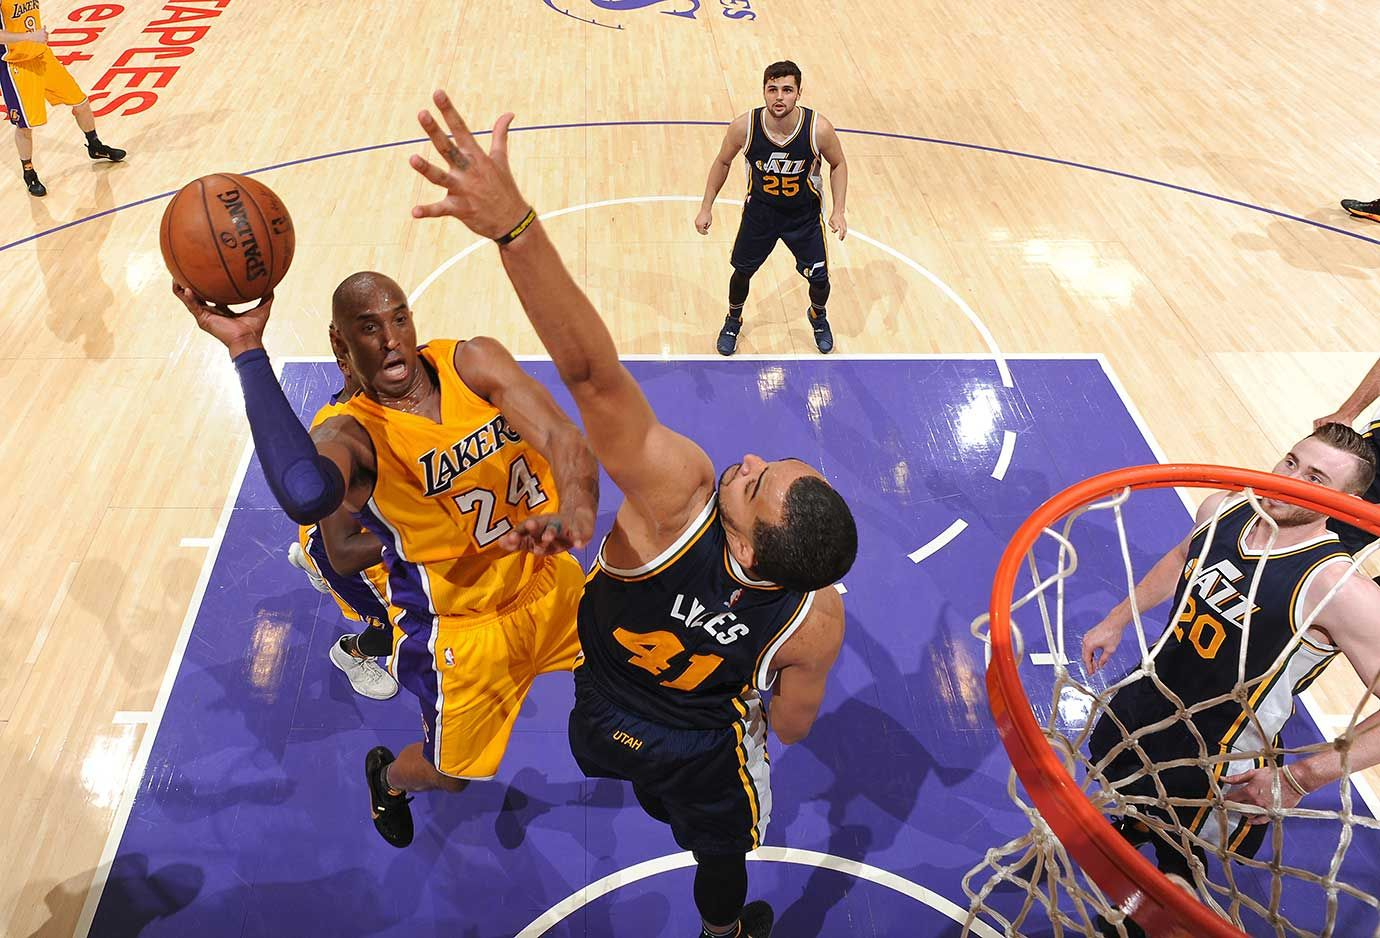 Kobe Bryant played 42 minutes in his final game and hit 22 of 50 shots.